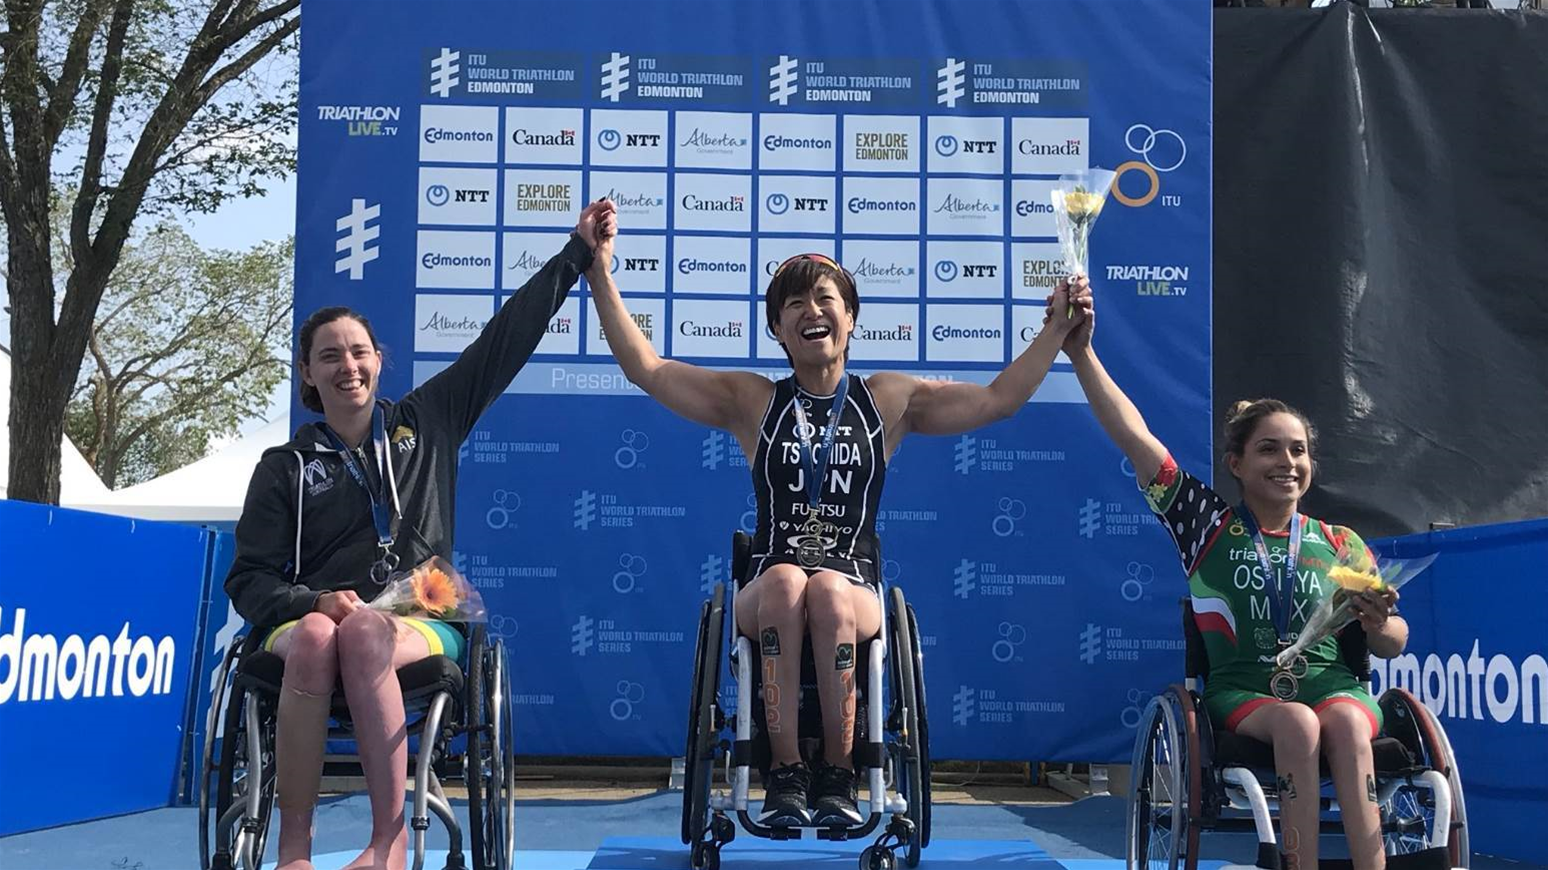 Silver for Tapp and Gentle in Edmonton